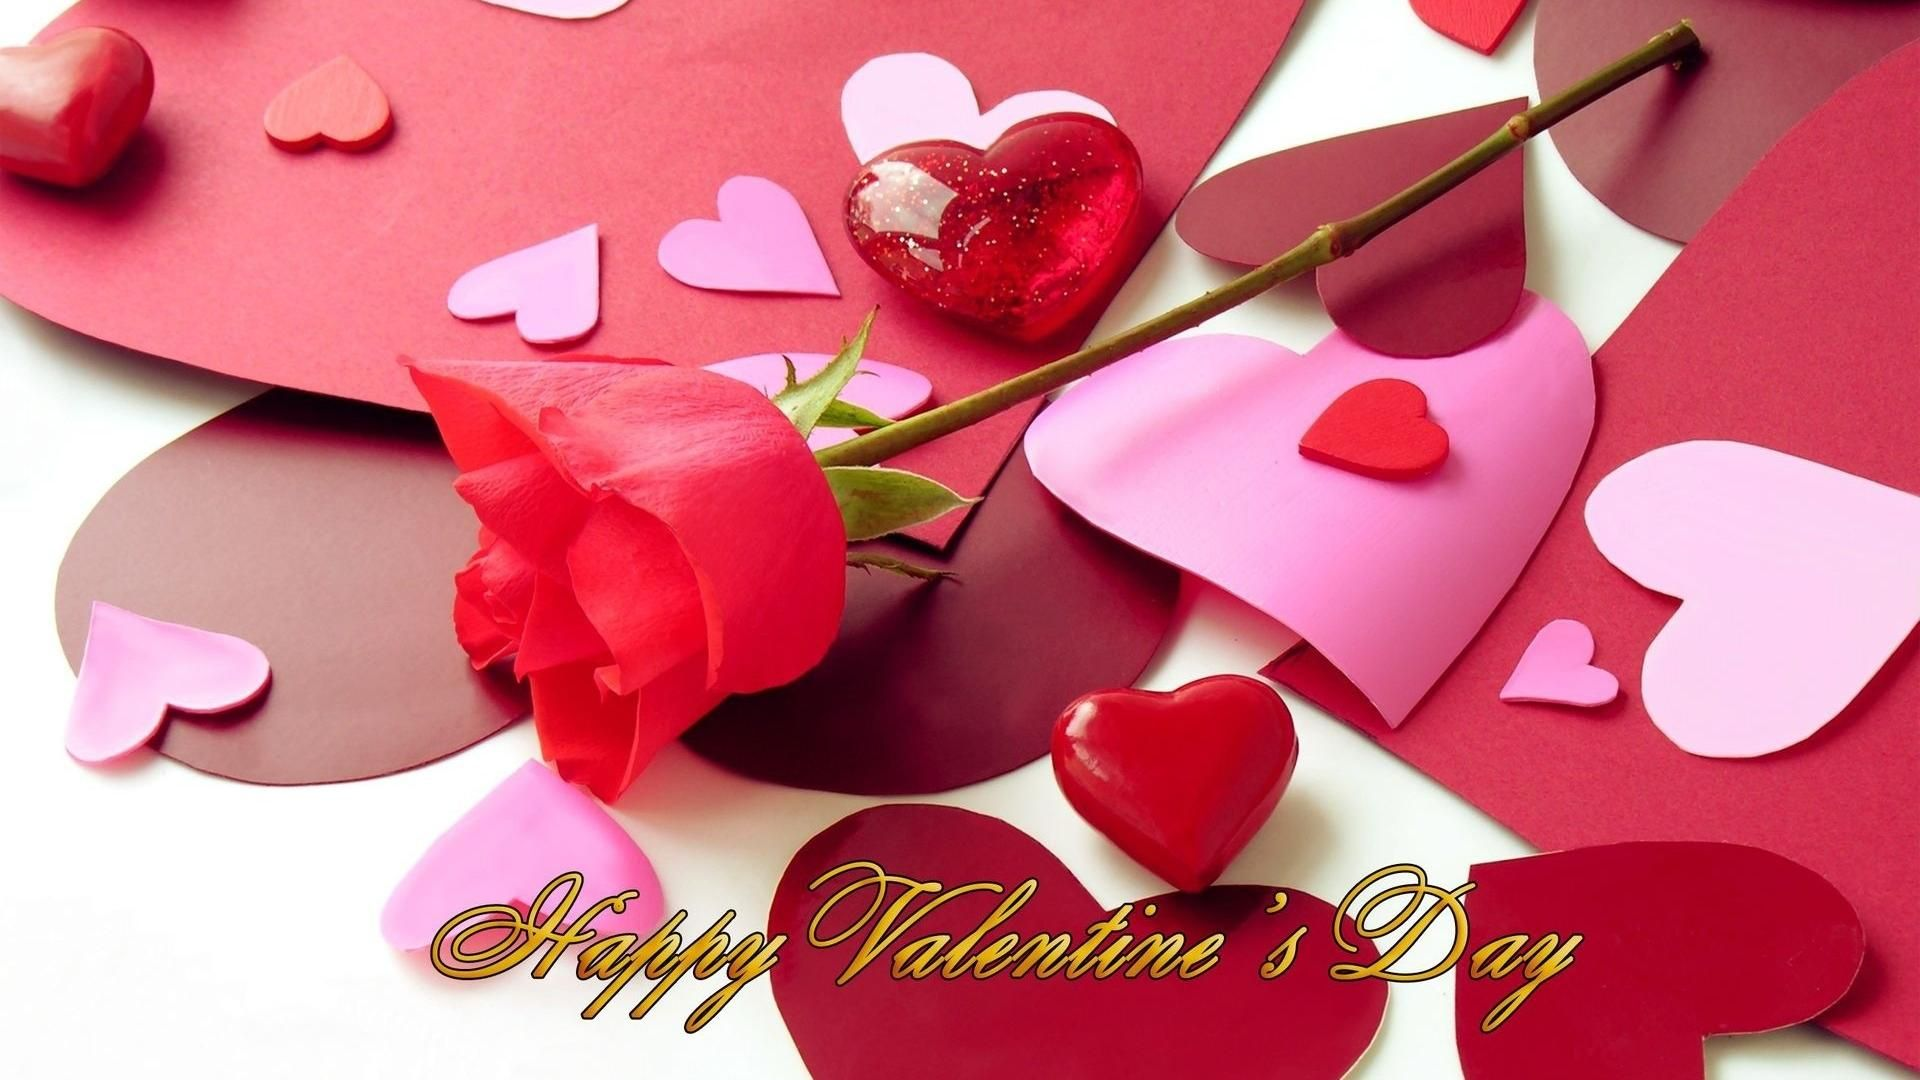 Happy Valentines Day Flower Hd Wallpaper Images Pinterest